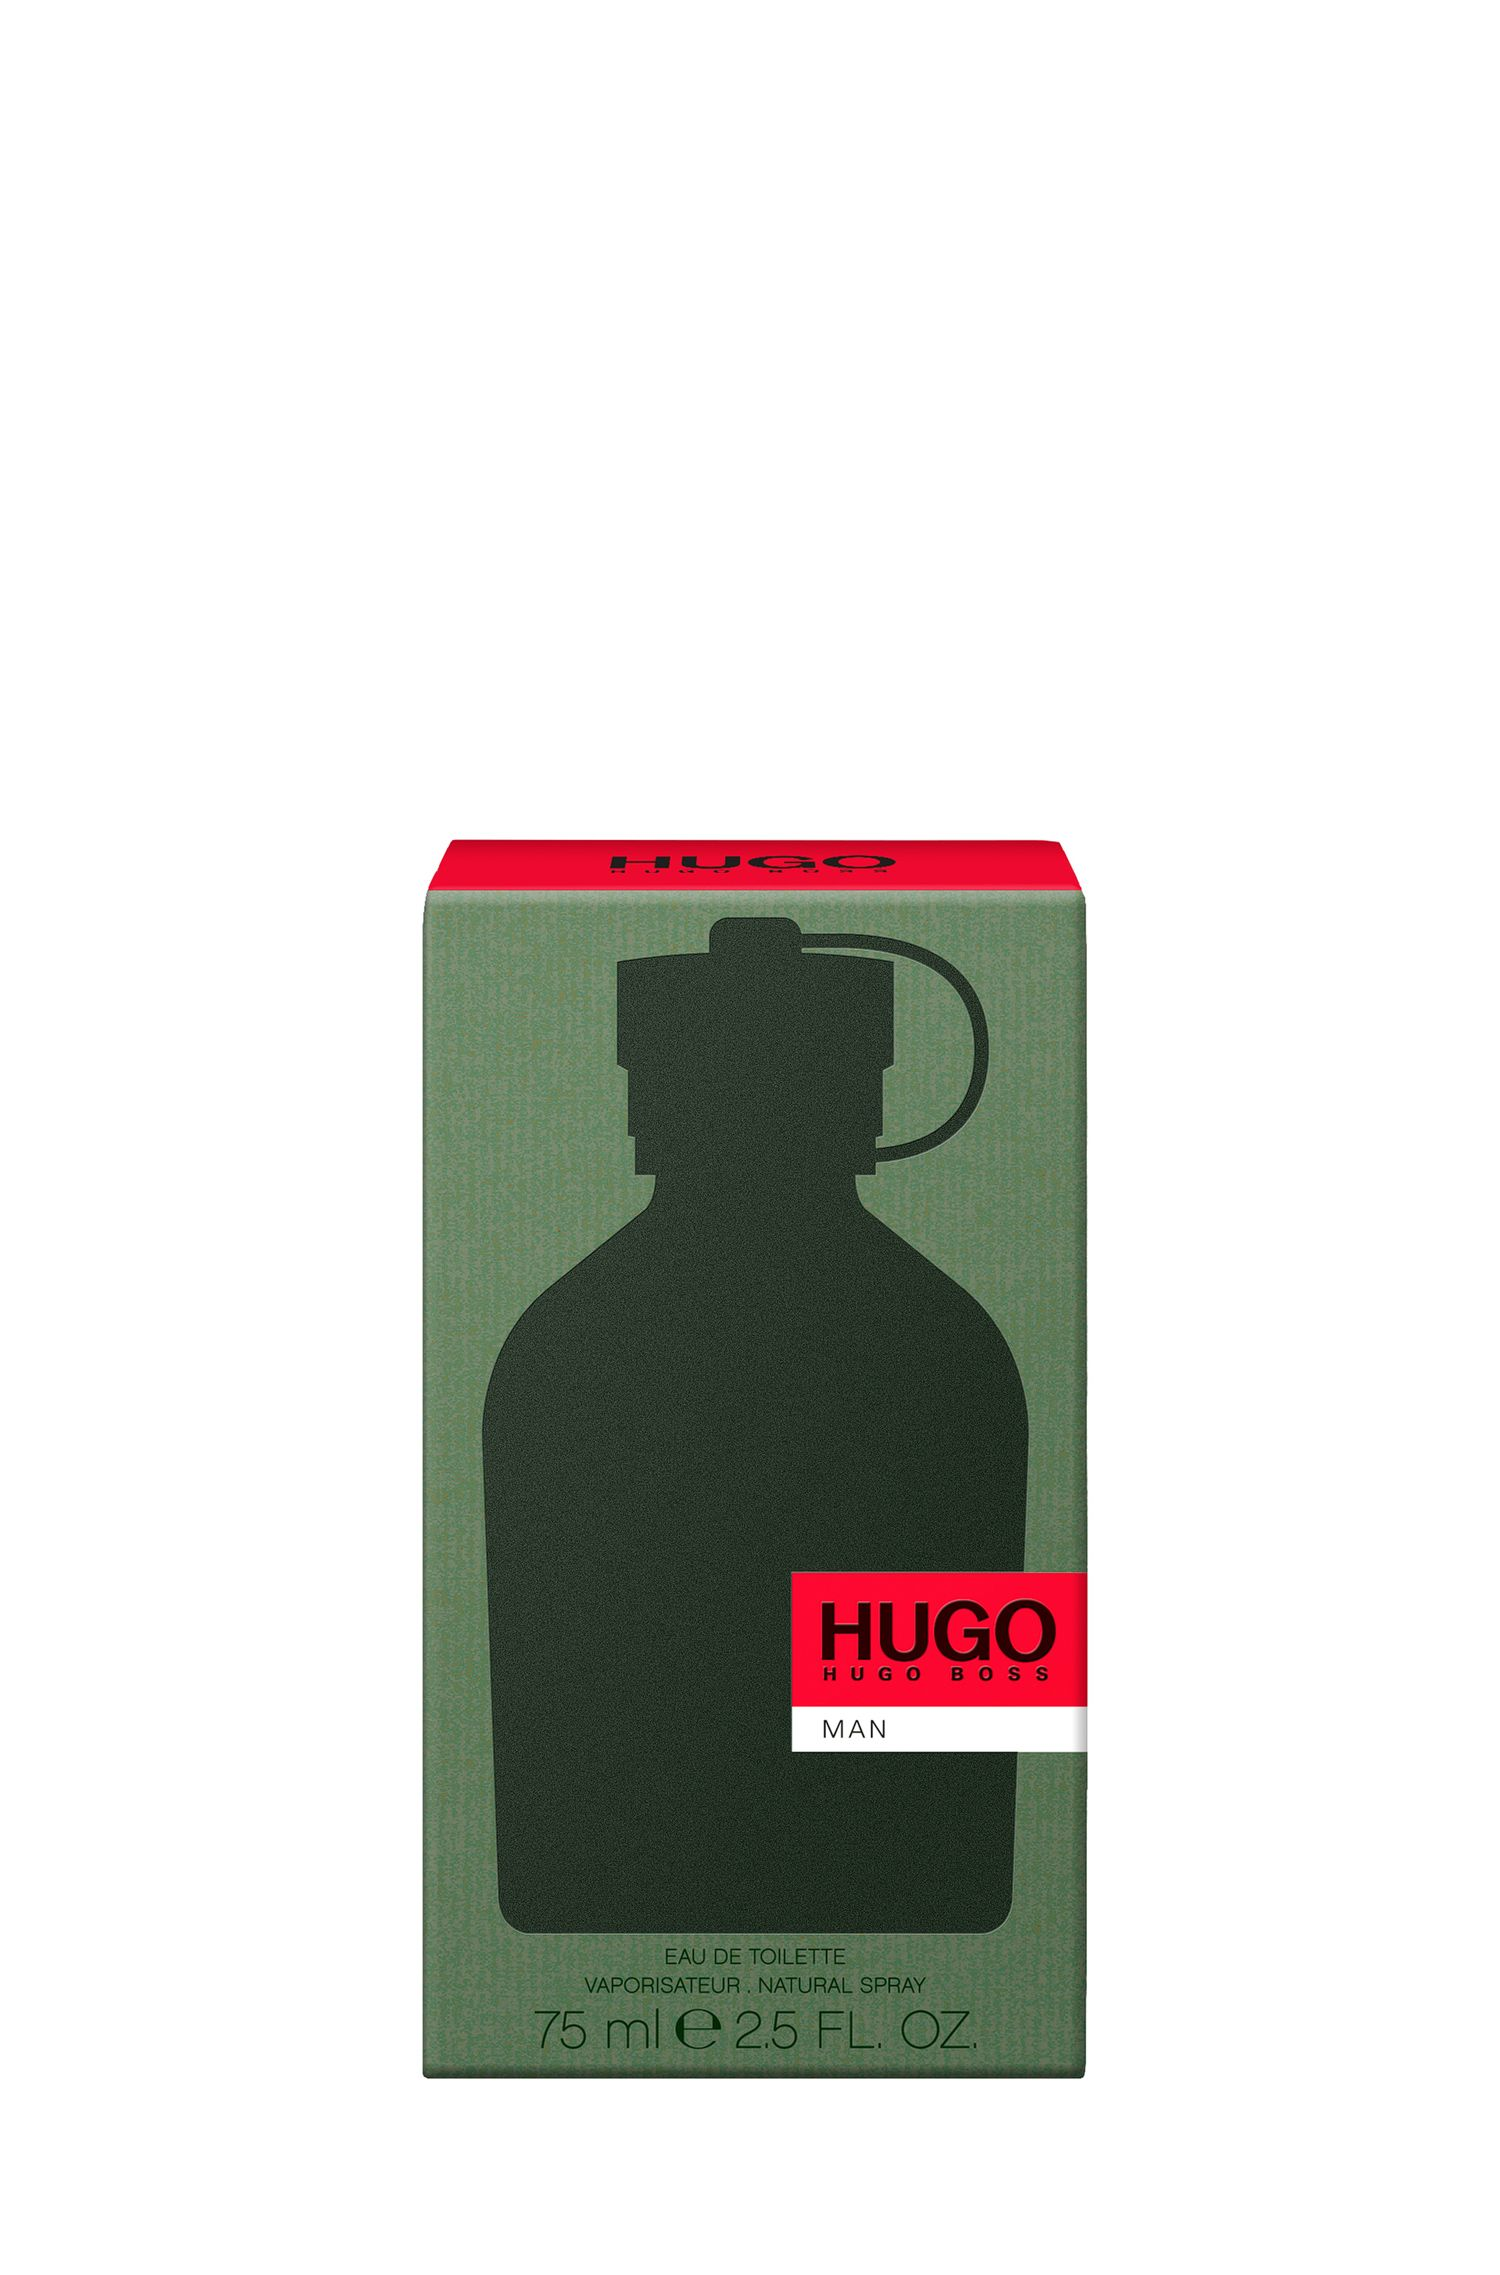 Eau de toilette HUGO Man de 75 ml